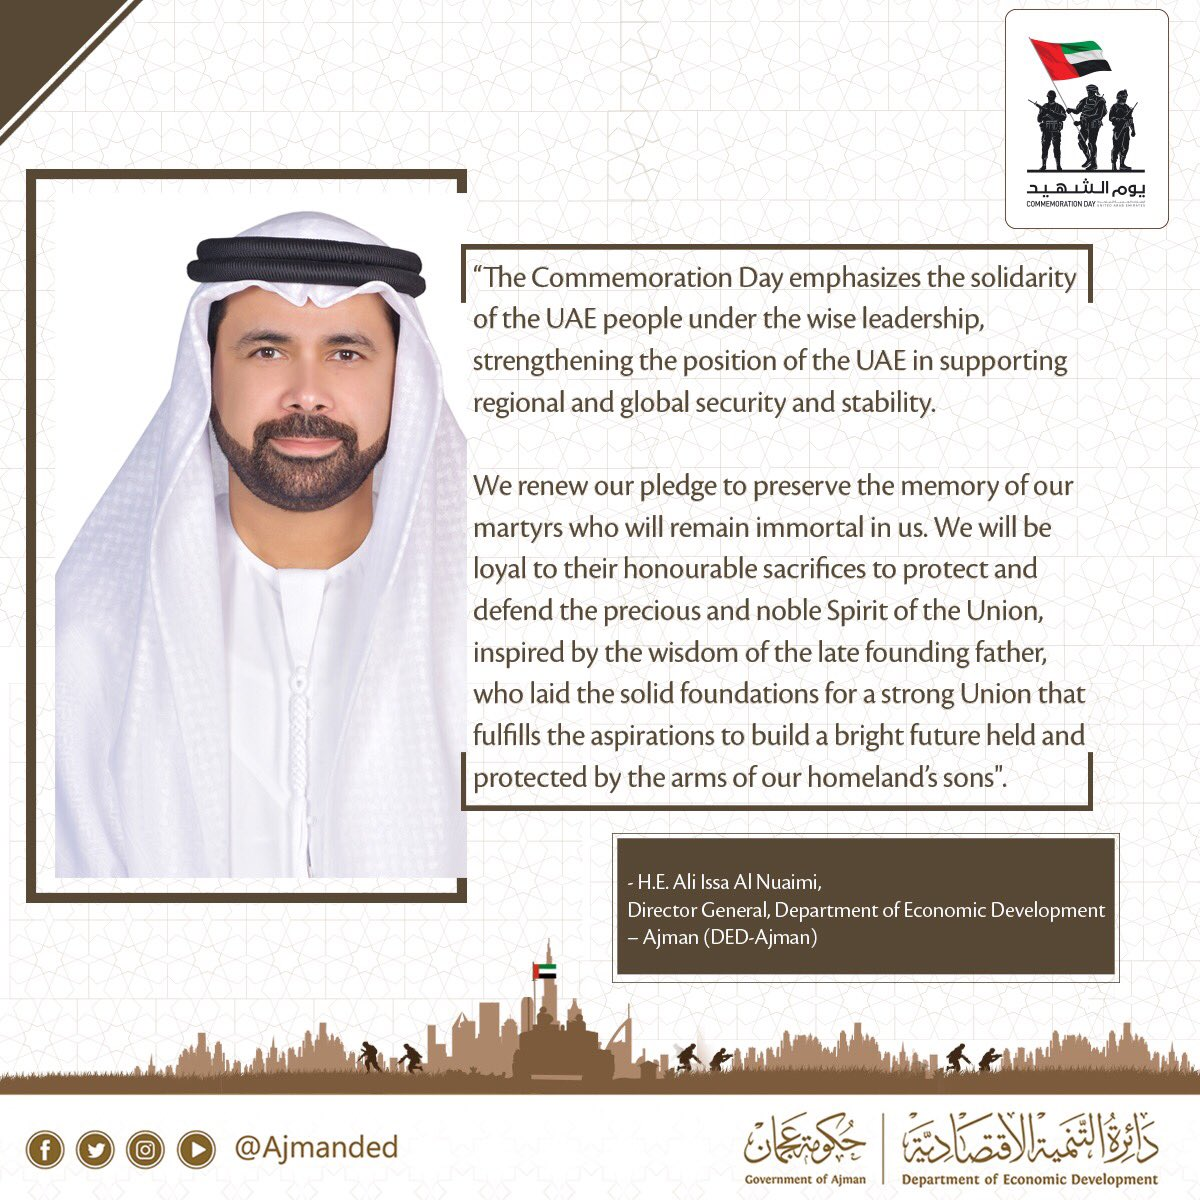 Message of HE Ali Issa Al Nuaimi, Director General of the Department of Economic Development in Ajman, on the occasion of #CommemorationDay.  #Events #AjmanDED #Economy #Investment #Ajman #UAE #CommemorationDay #UAEMartyrs #UAEPride #Ajman #UAE